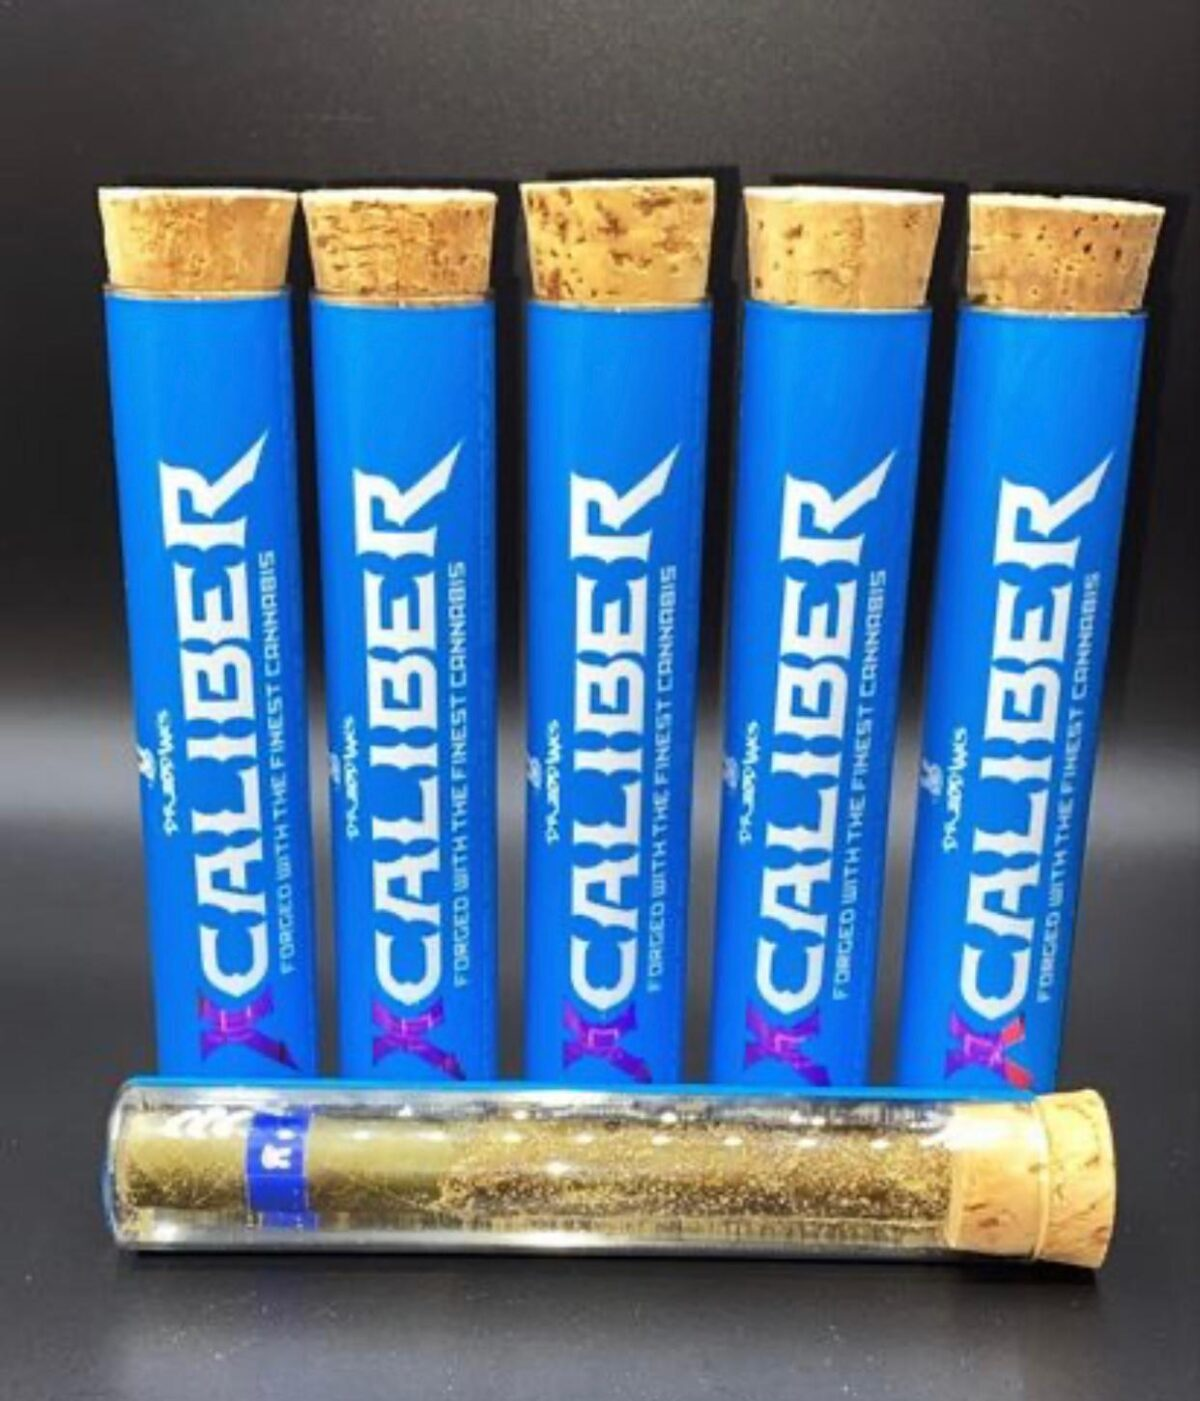 Buy Dr Zodiaks's Indica Xcaliber Blunts